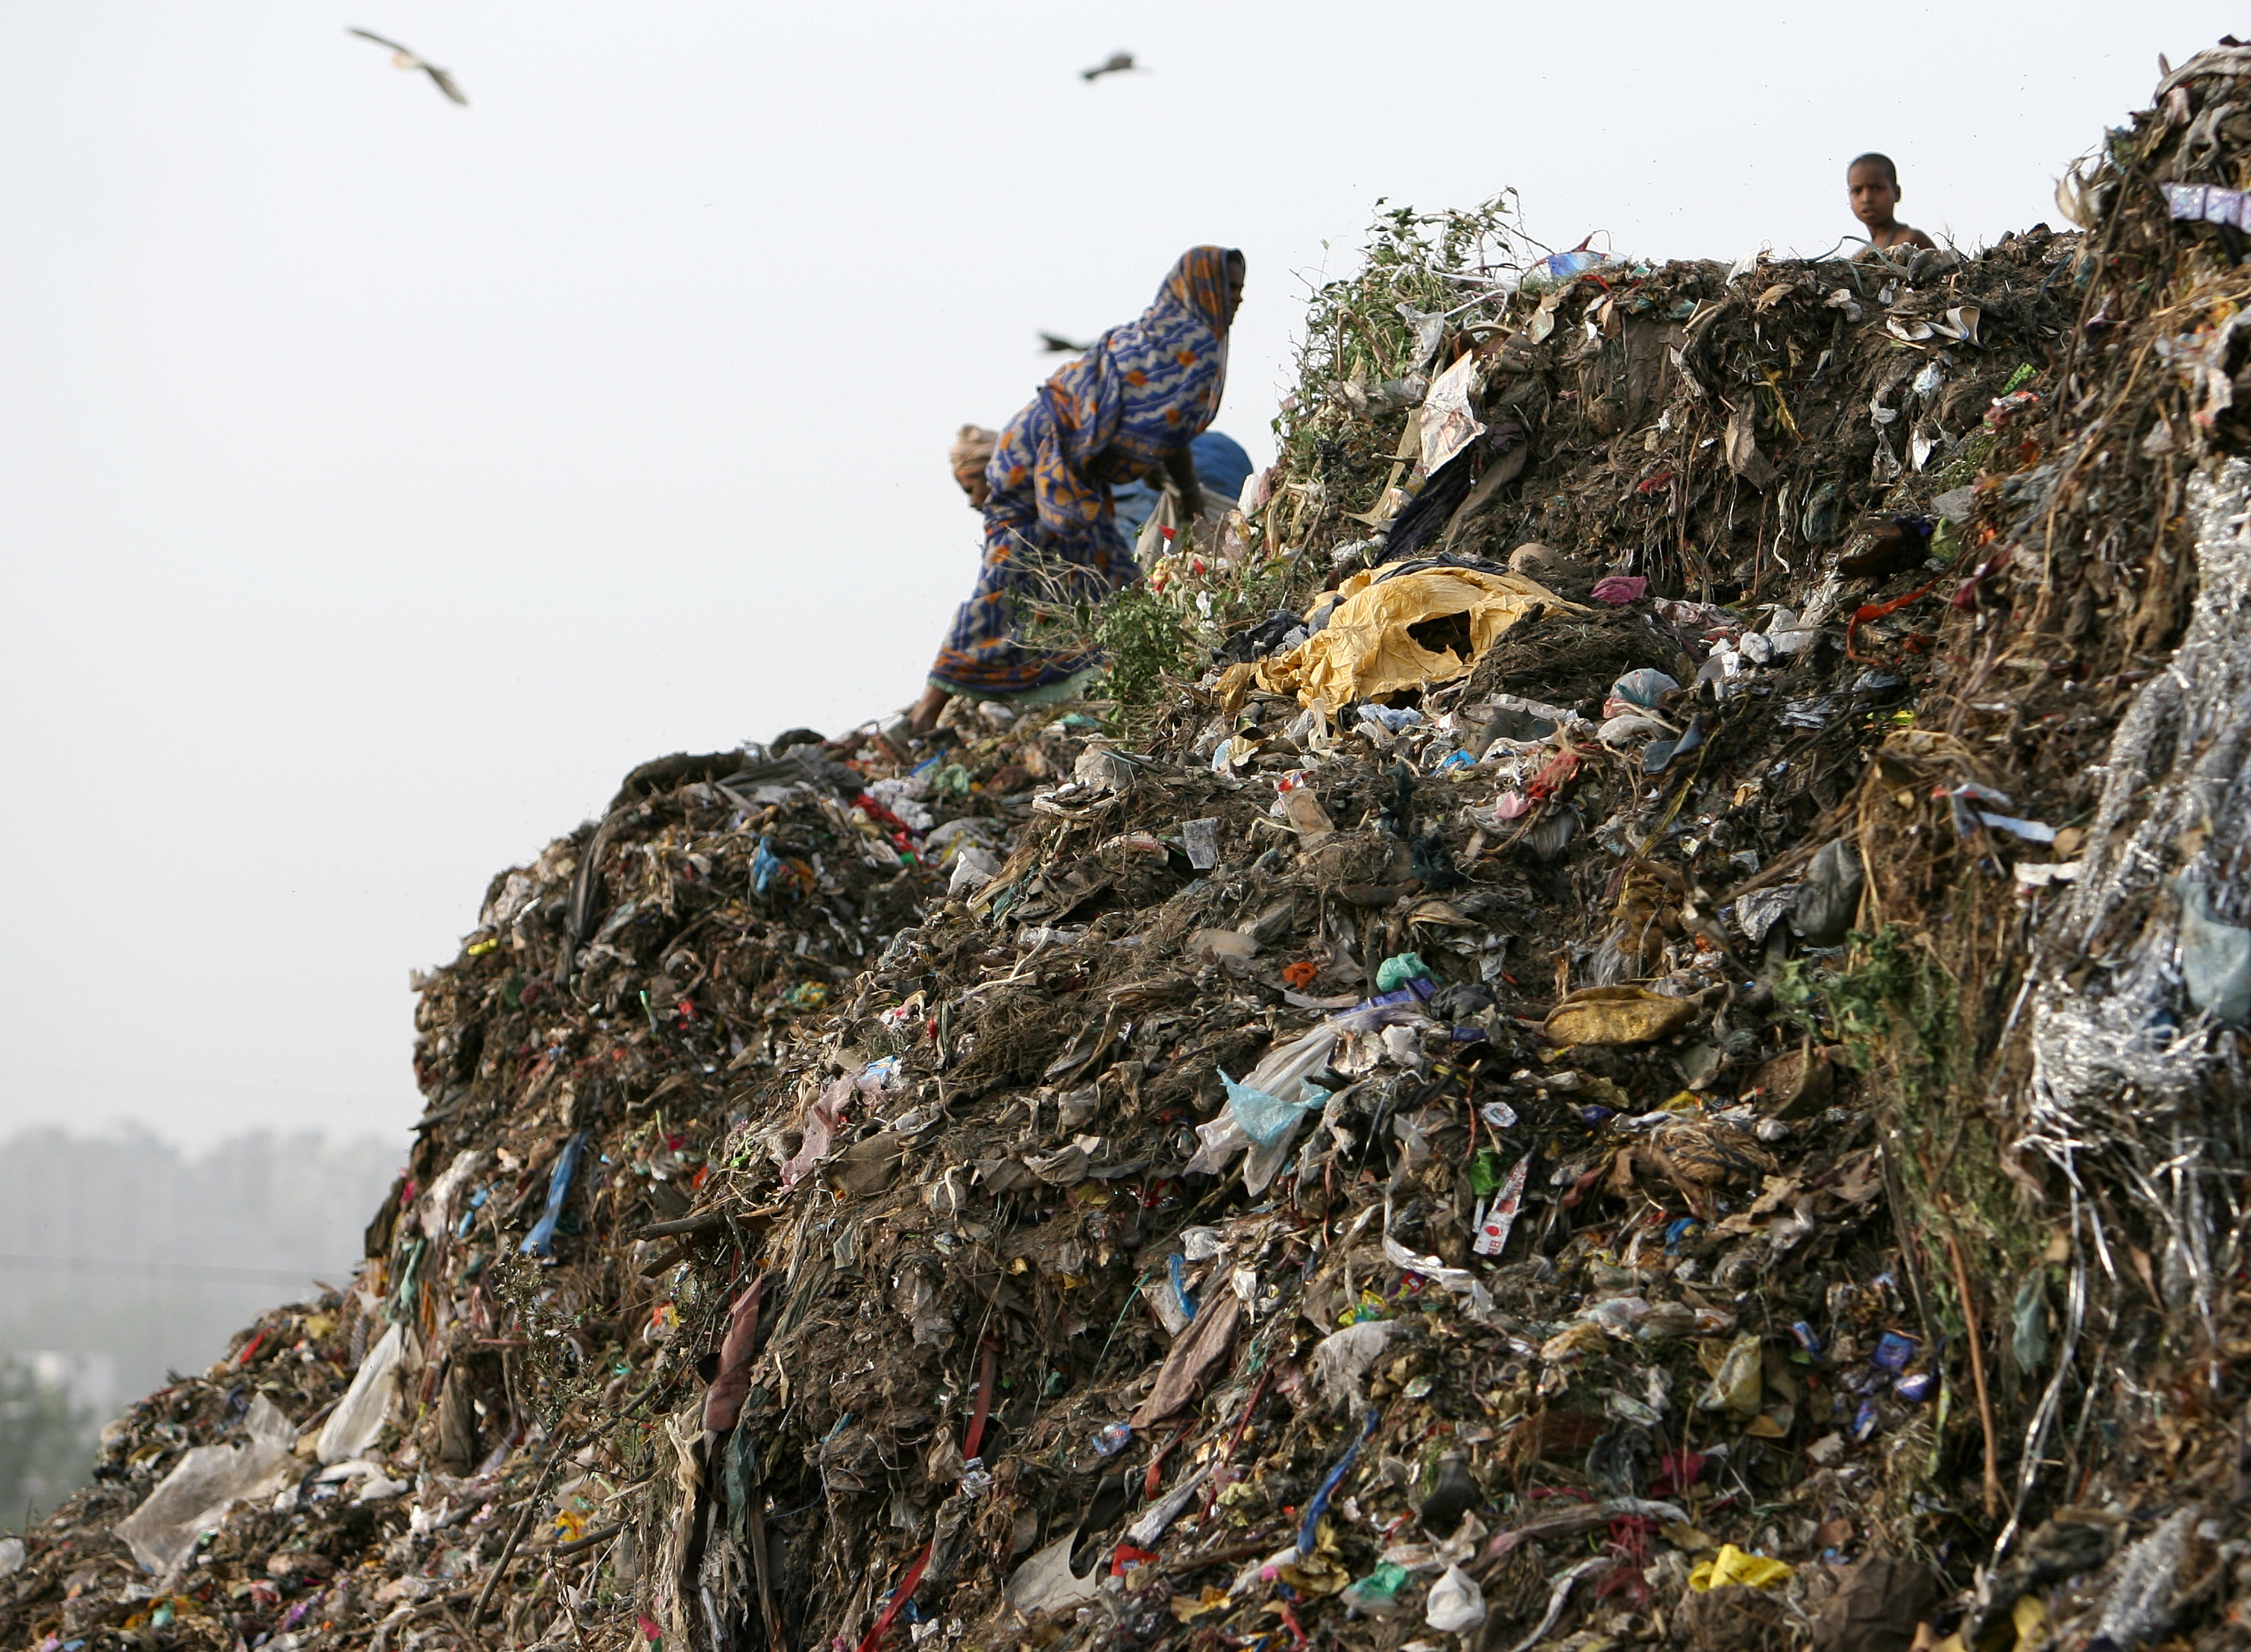 A woman collects recyclable materials on a mountain of garbage in New Delhi June 8, 2006. REUTERS/Desmond Boylan (INDIA) - RTR1E7N8